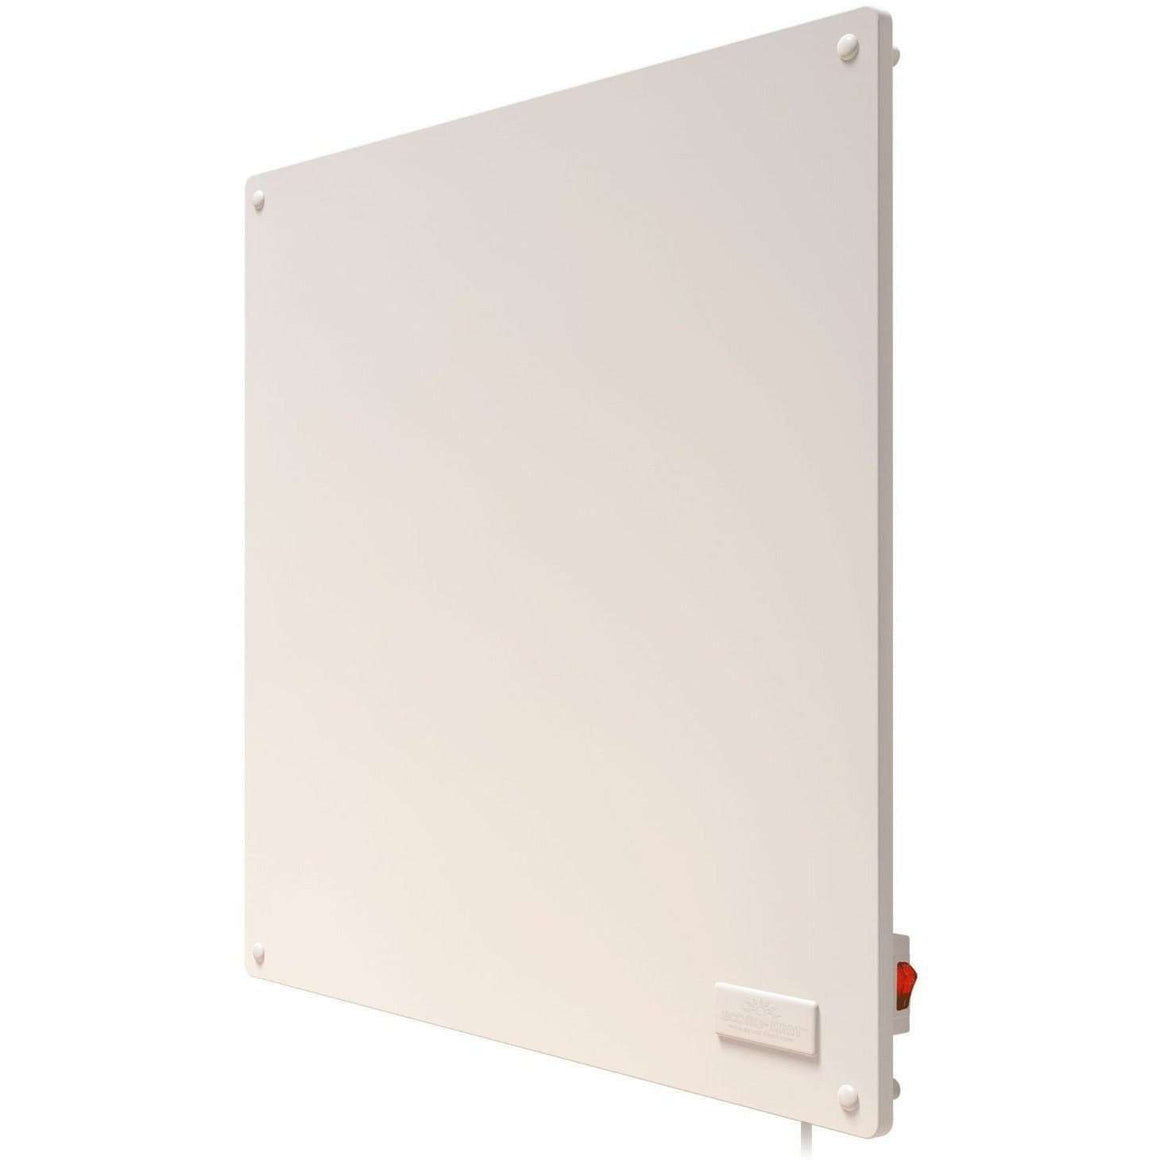 Econo-Heat - Convection E-Heater - 0603 - White - Wholesale Home Improvement Products